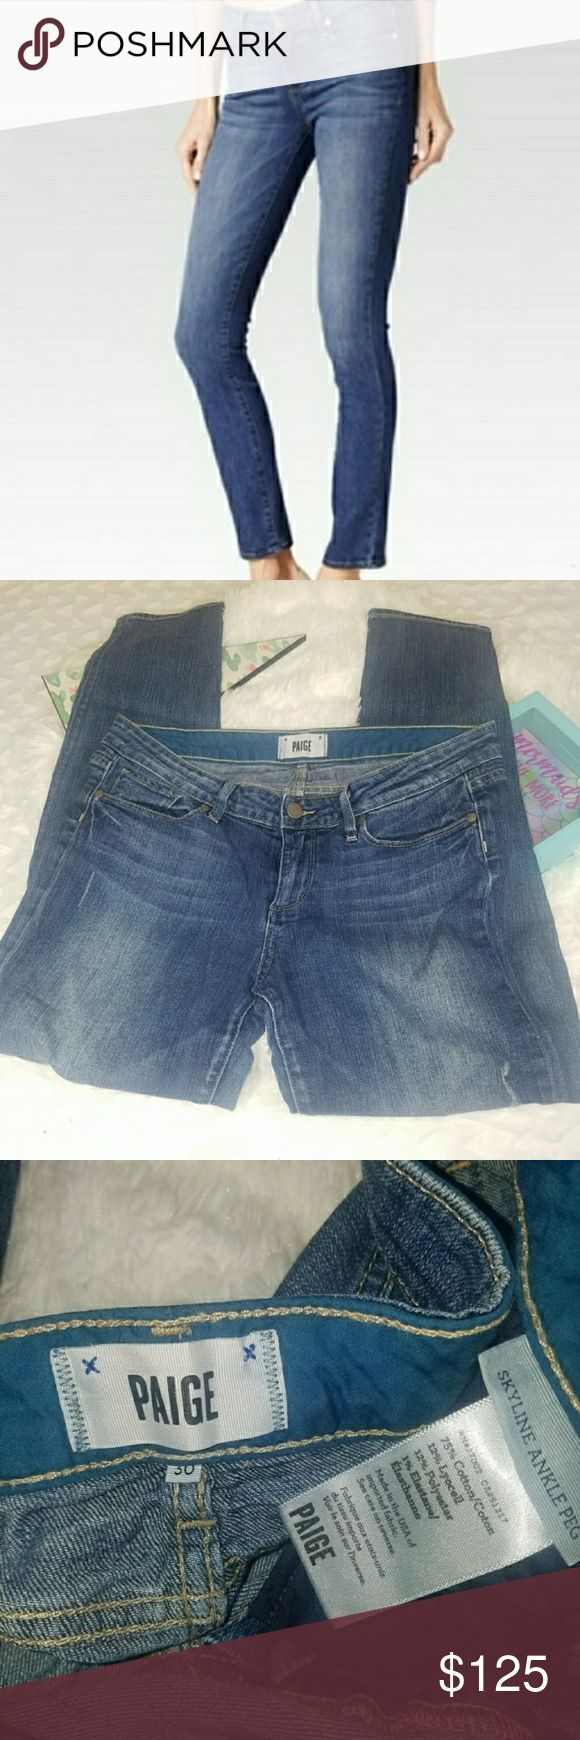 Paige skyline distressed ankle peg size 30 🎉Like new PAIGE SKYLINE ANKLE PEG 🎉SIZE-30 🎉 MANUFACTURED distressing 🎉wash- medium to light  🎉Bundle and save 🎉offers welcome  Rock Revival, Anthro ,Anthropologie,  Dojo 7, For All Mankind ,Citizens of Humanity ,Miss Me ,True Religion, AG ,BKE ,lucky Brand , gap jeans , old navy jeans ,  american eagle , 7fam , old navy, gap , trousers, pants, slacks , cute , stylish, designer jeans , PAIGE Jeans Ankle & Cropped